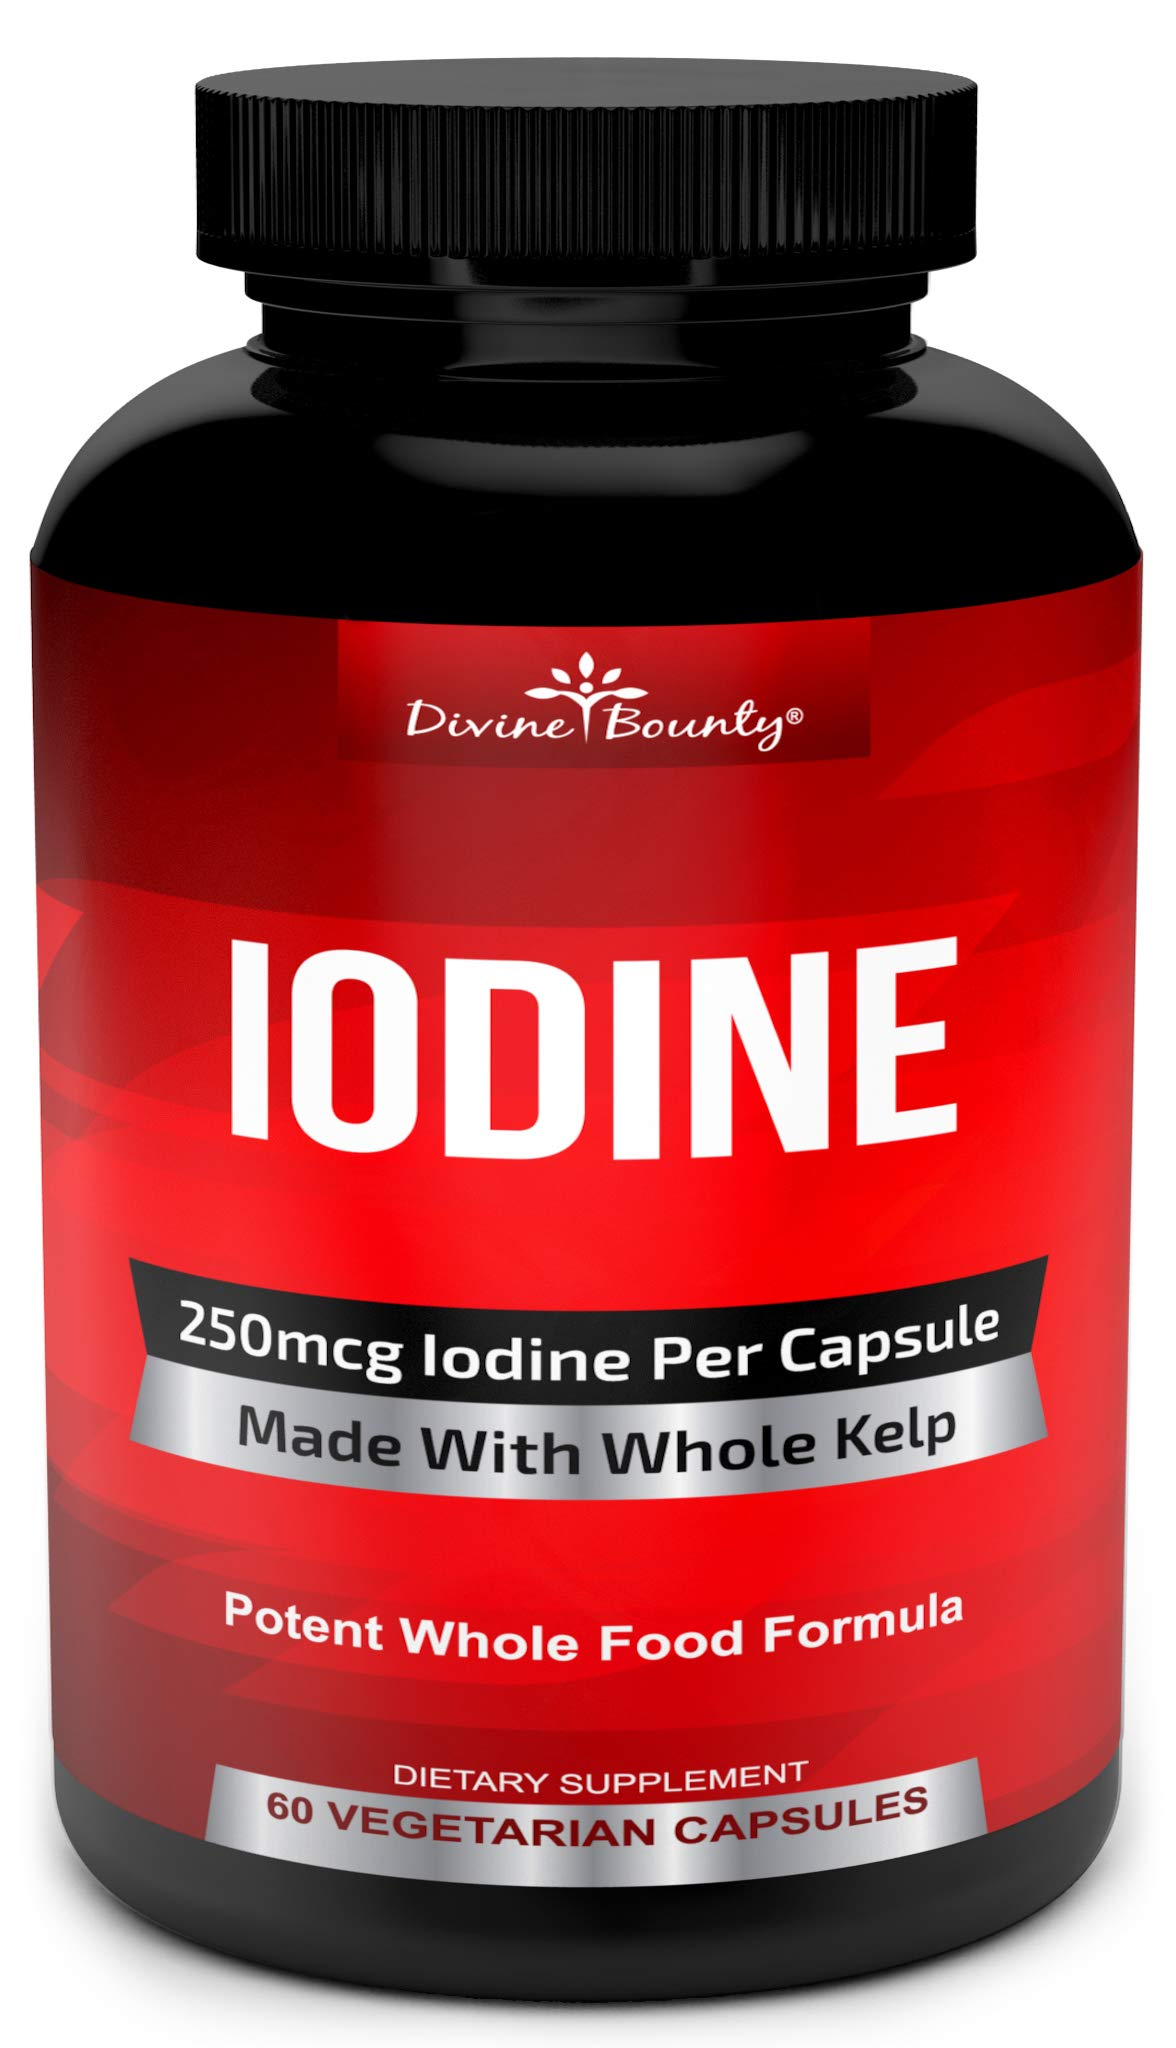 Iodine Supplement 250mcg